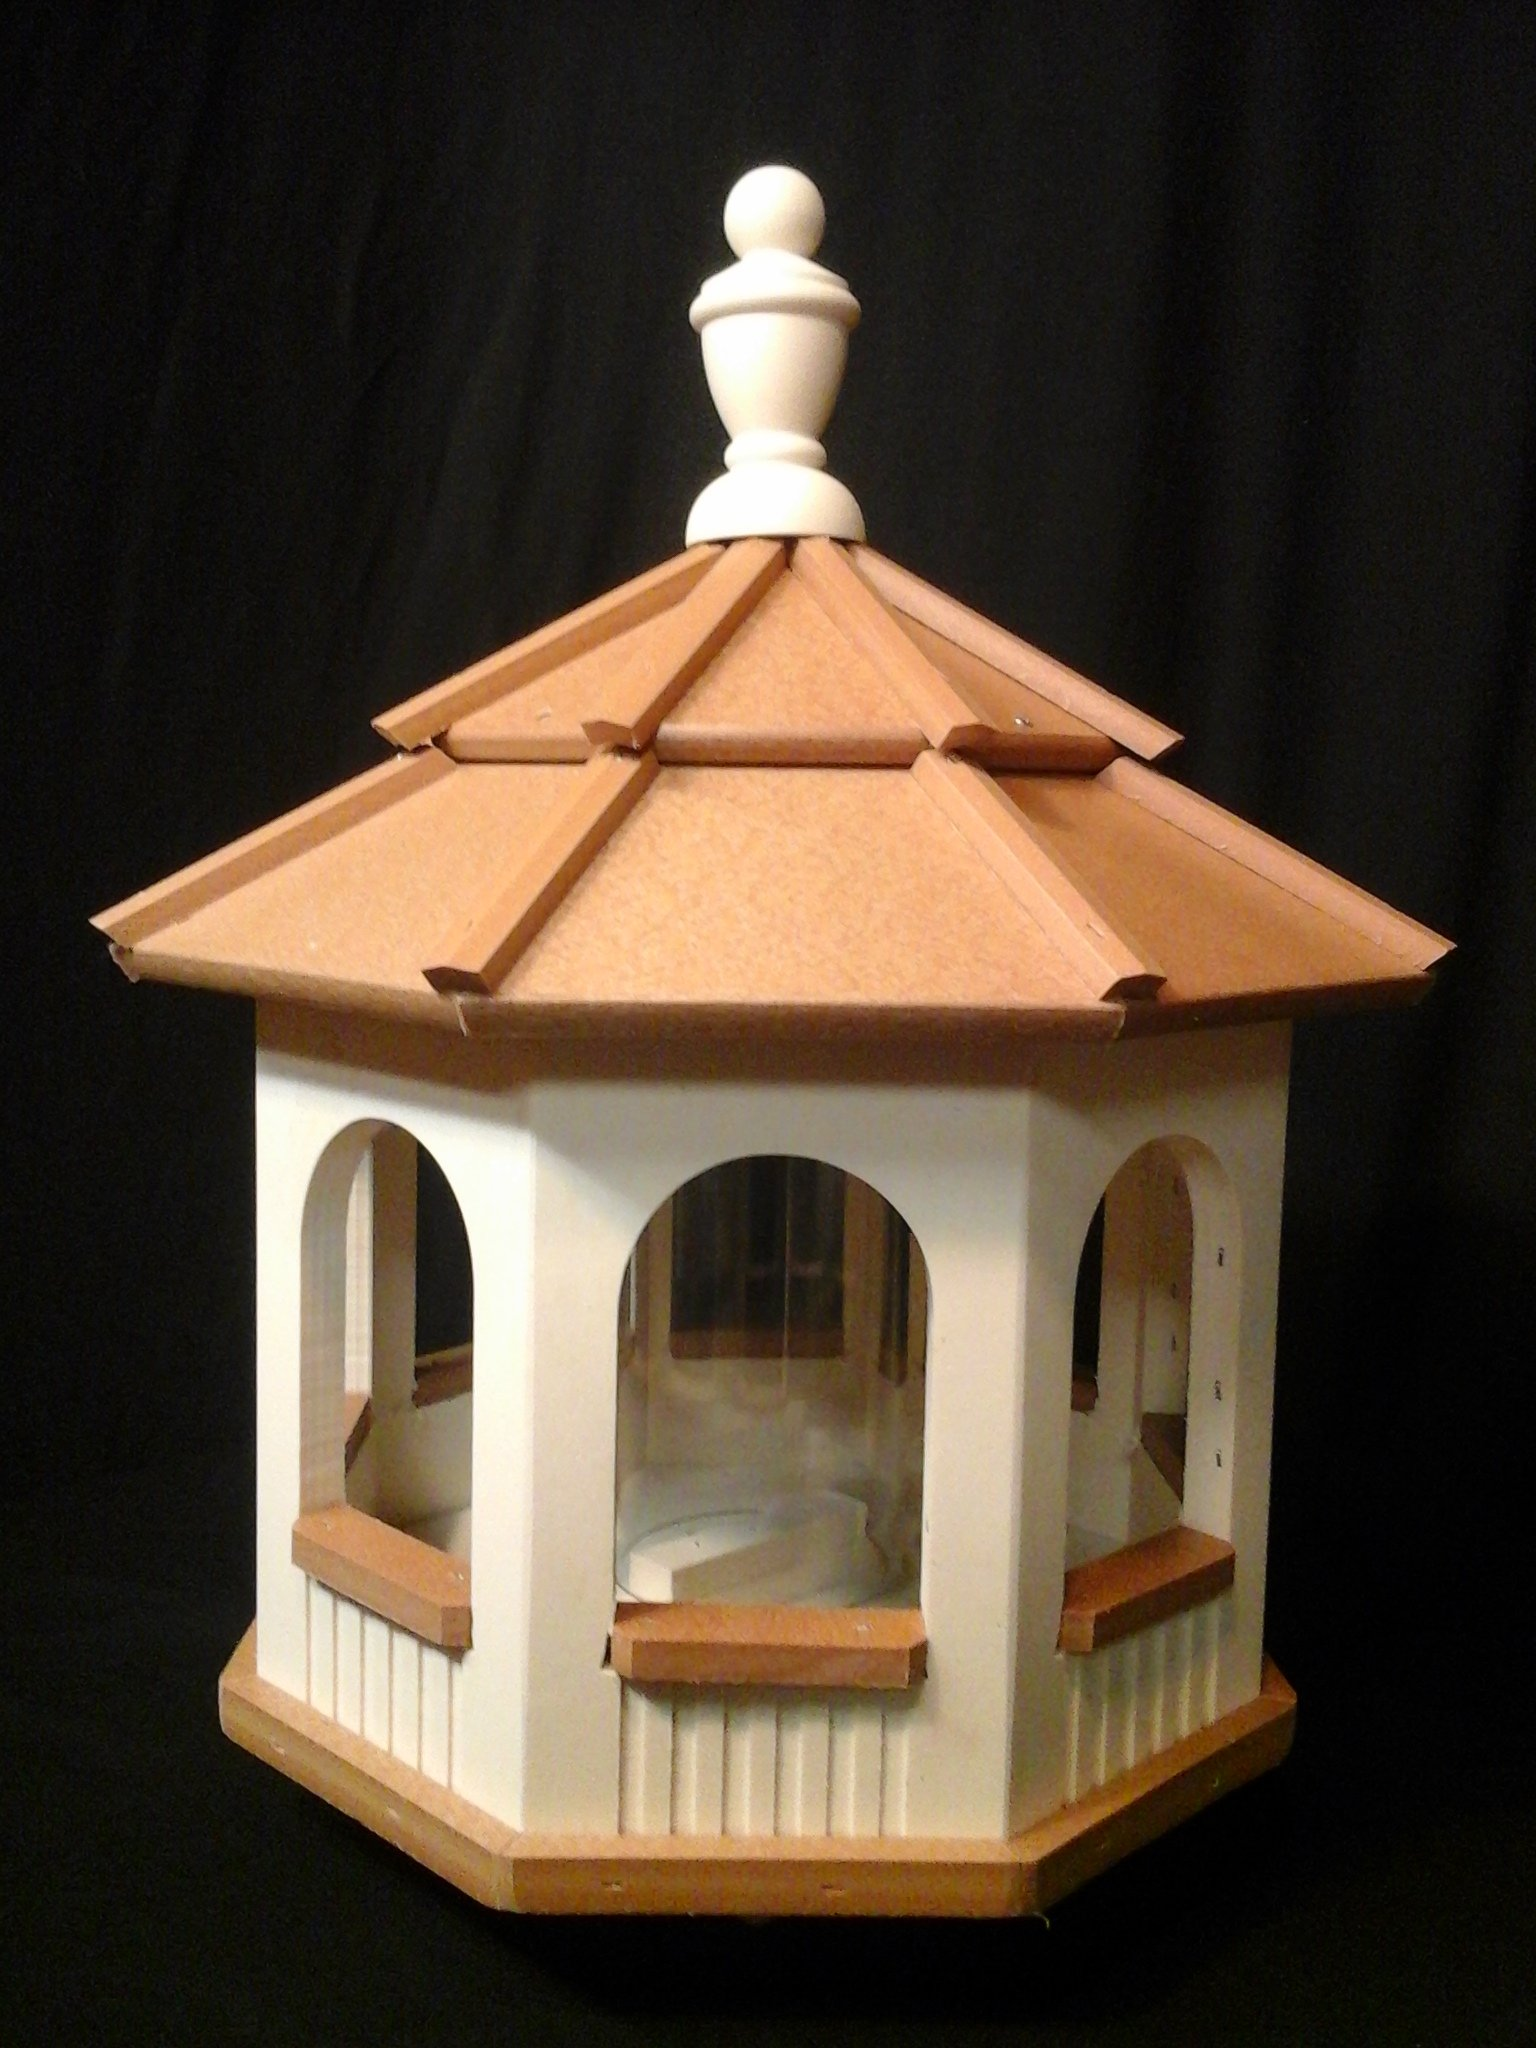 Vinyl Gazebo Bird Feeder Amish Homemade Handmade Handcrafted Ivory & Cedar med by Amish Crafted